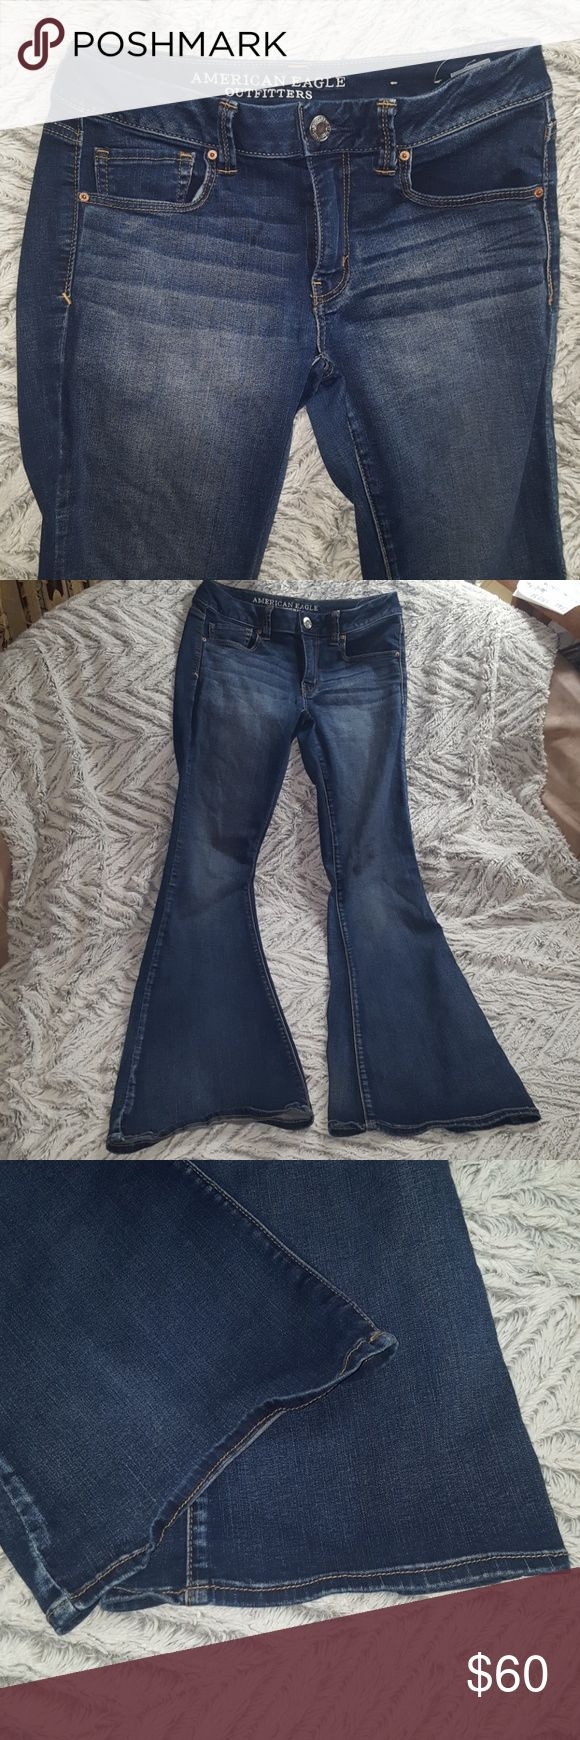 American Eagle BOHO FLARE SUPER STRETCH Jeans American Eagle BOHO FLARE SUPER SUPER STRETCH Jeans ~ size 6 regular ~ 65% cotton  23% viscose 11% polyester 1% elastane AMAZING HIGH QUALITY HARD TO FIND STYLE OF JEANS! I only wore these once. Small stitch/string loose on back of left pocket. Does not affect jeans at all, just wanted to document and slight flaw. I SHIP DAILY American Eagle BOHO FLARE SUPER SUPER STRETCH Jeans American Eagle Outfitters Jeans Flare & Wide Leg